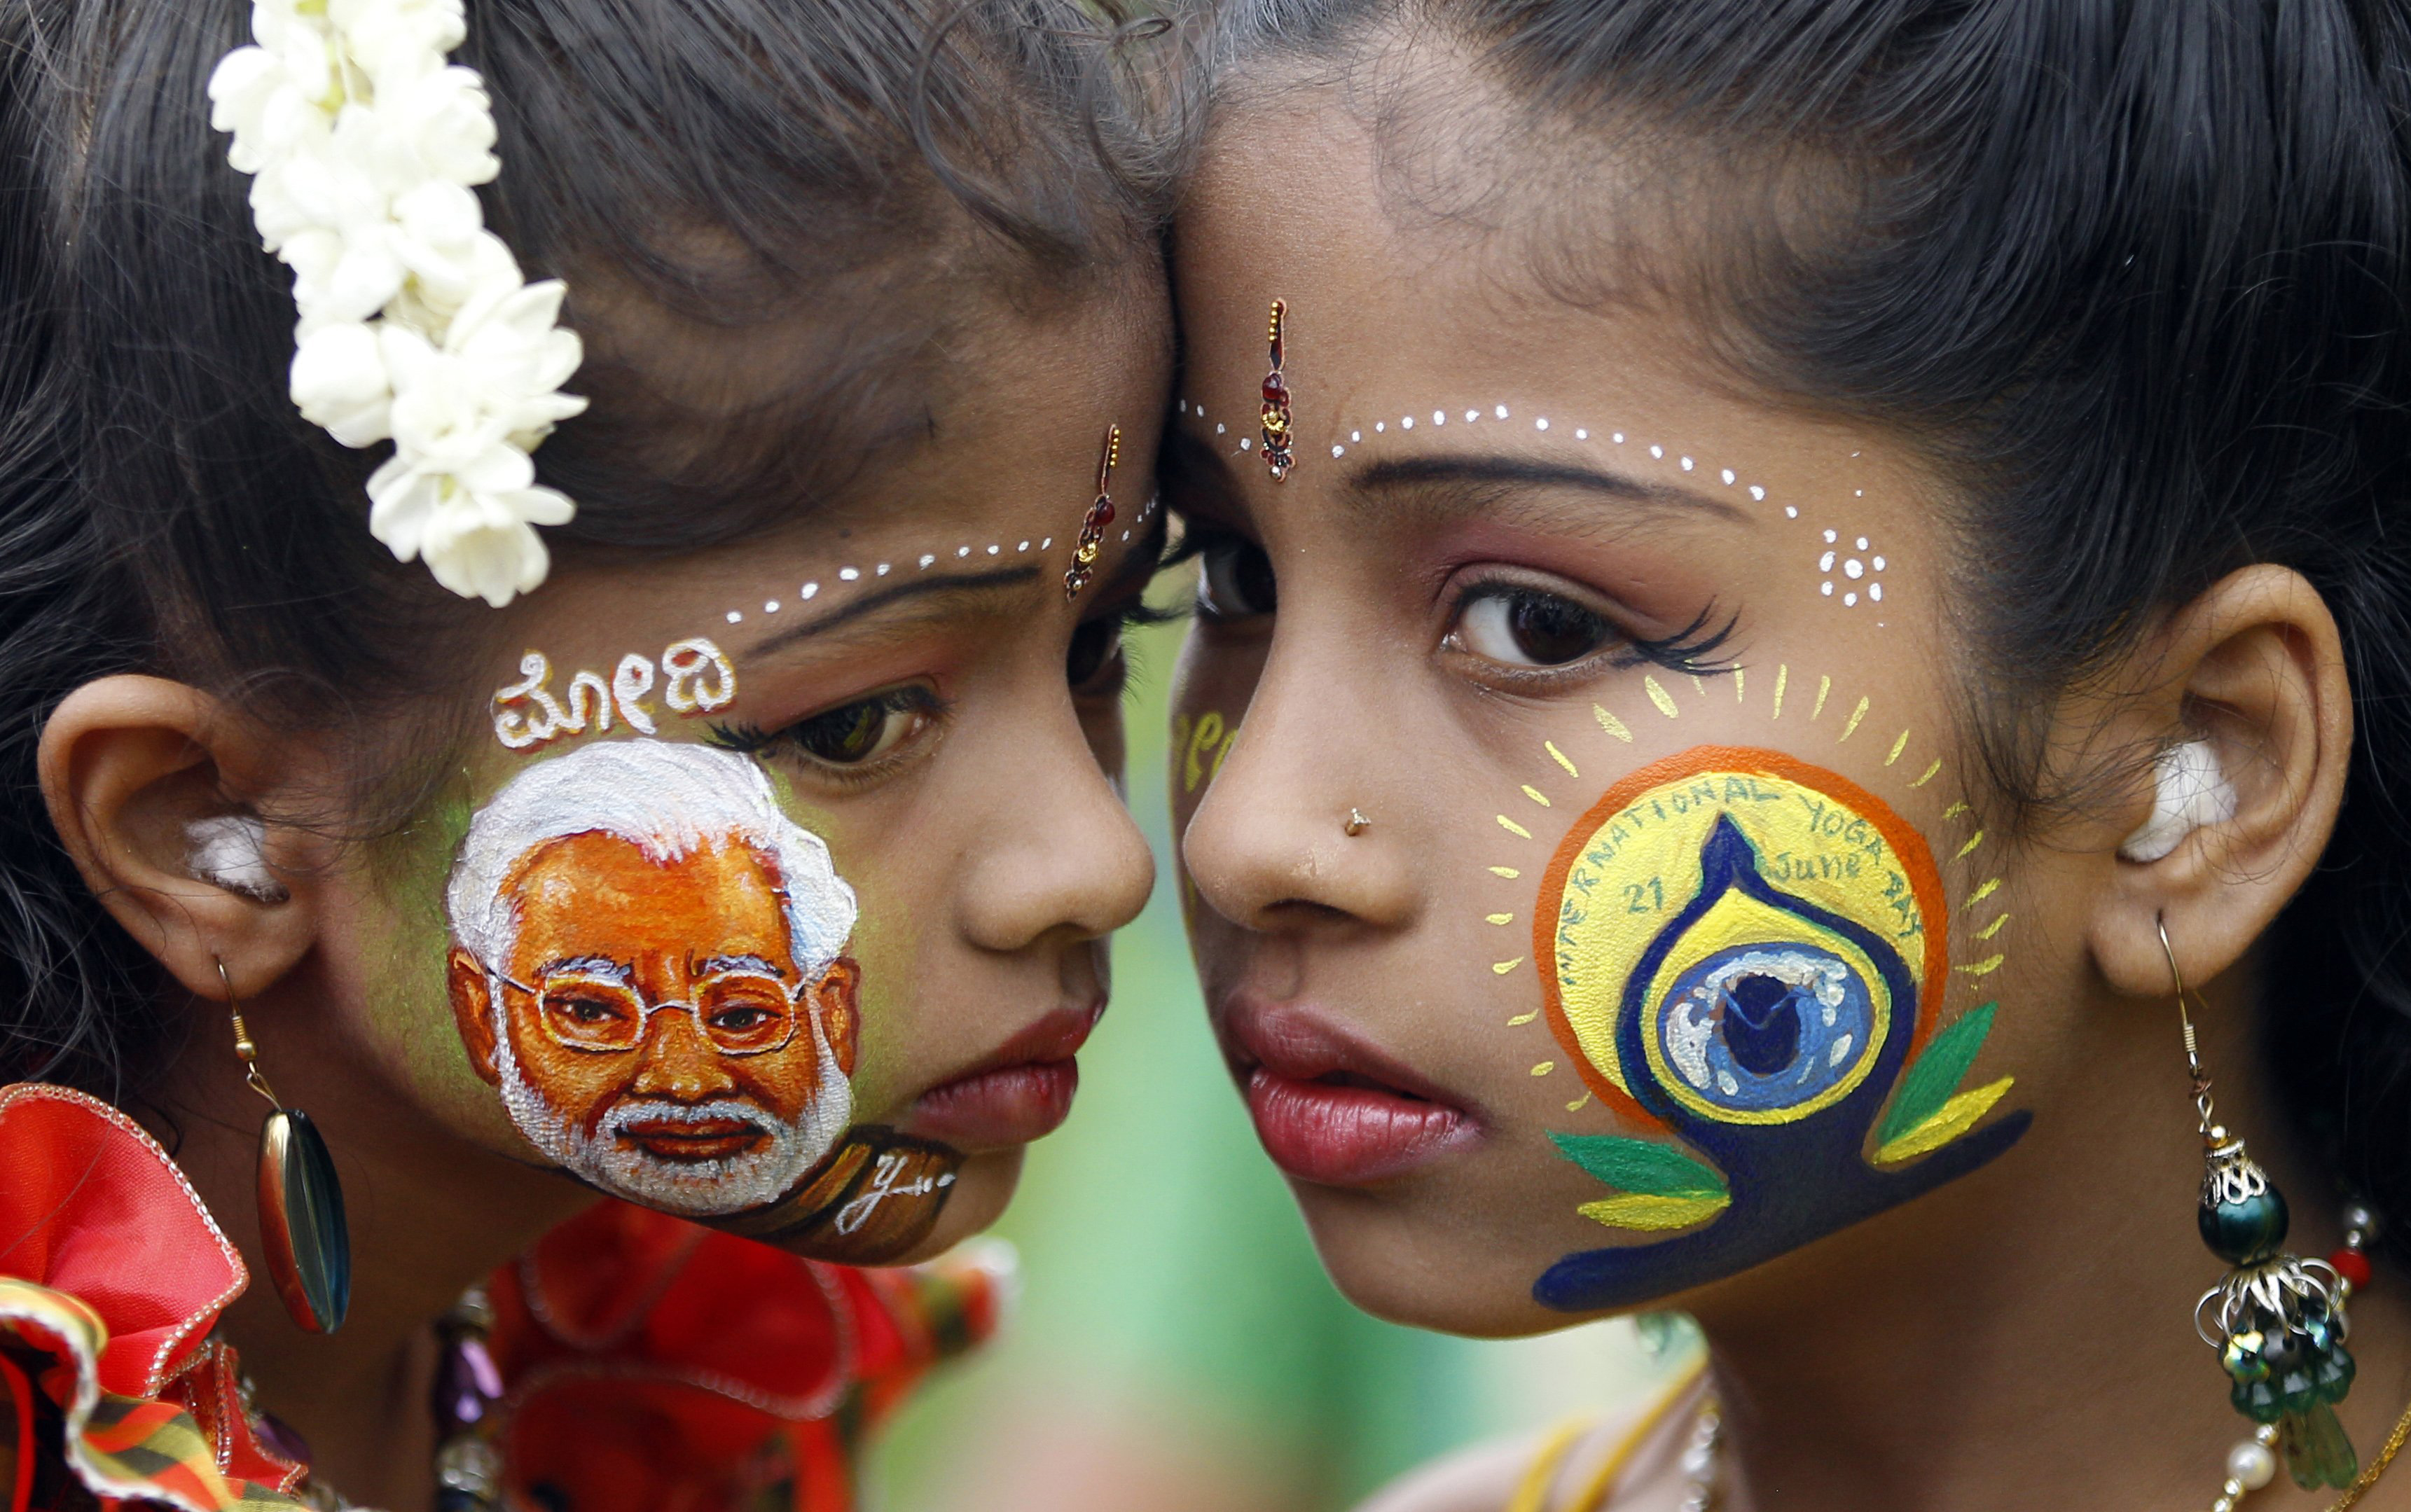 An Indian girl, left, displays a picture of Prime Minister Narendra Modi painted on her face as another sports the logo of International Yoga Day in Bangalore, India, on June 21, 2015.